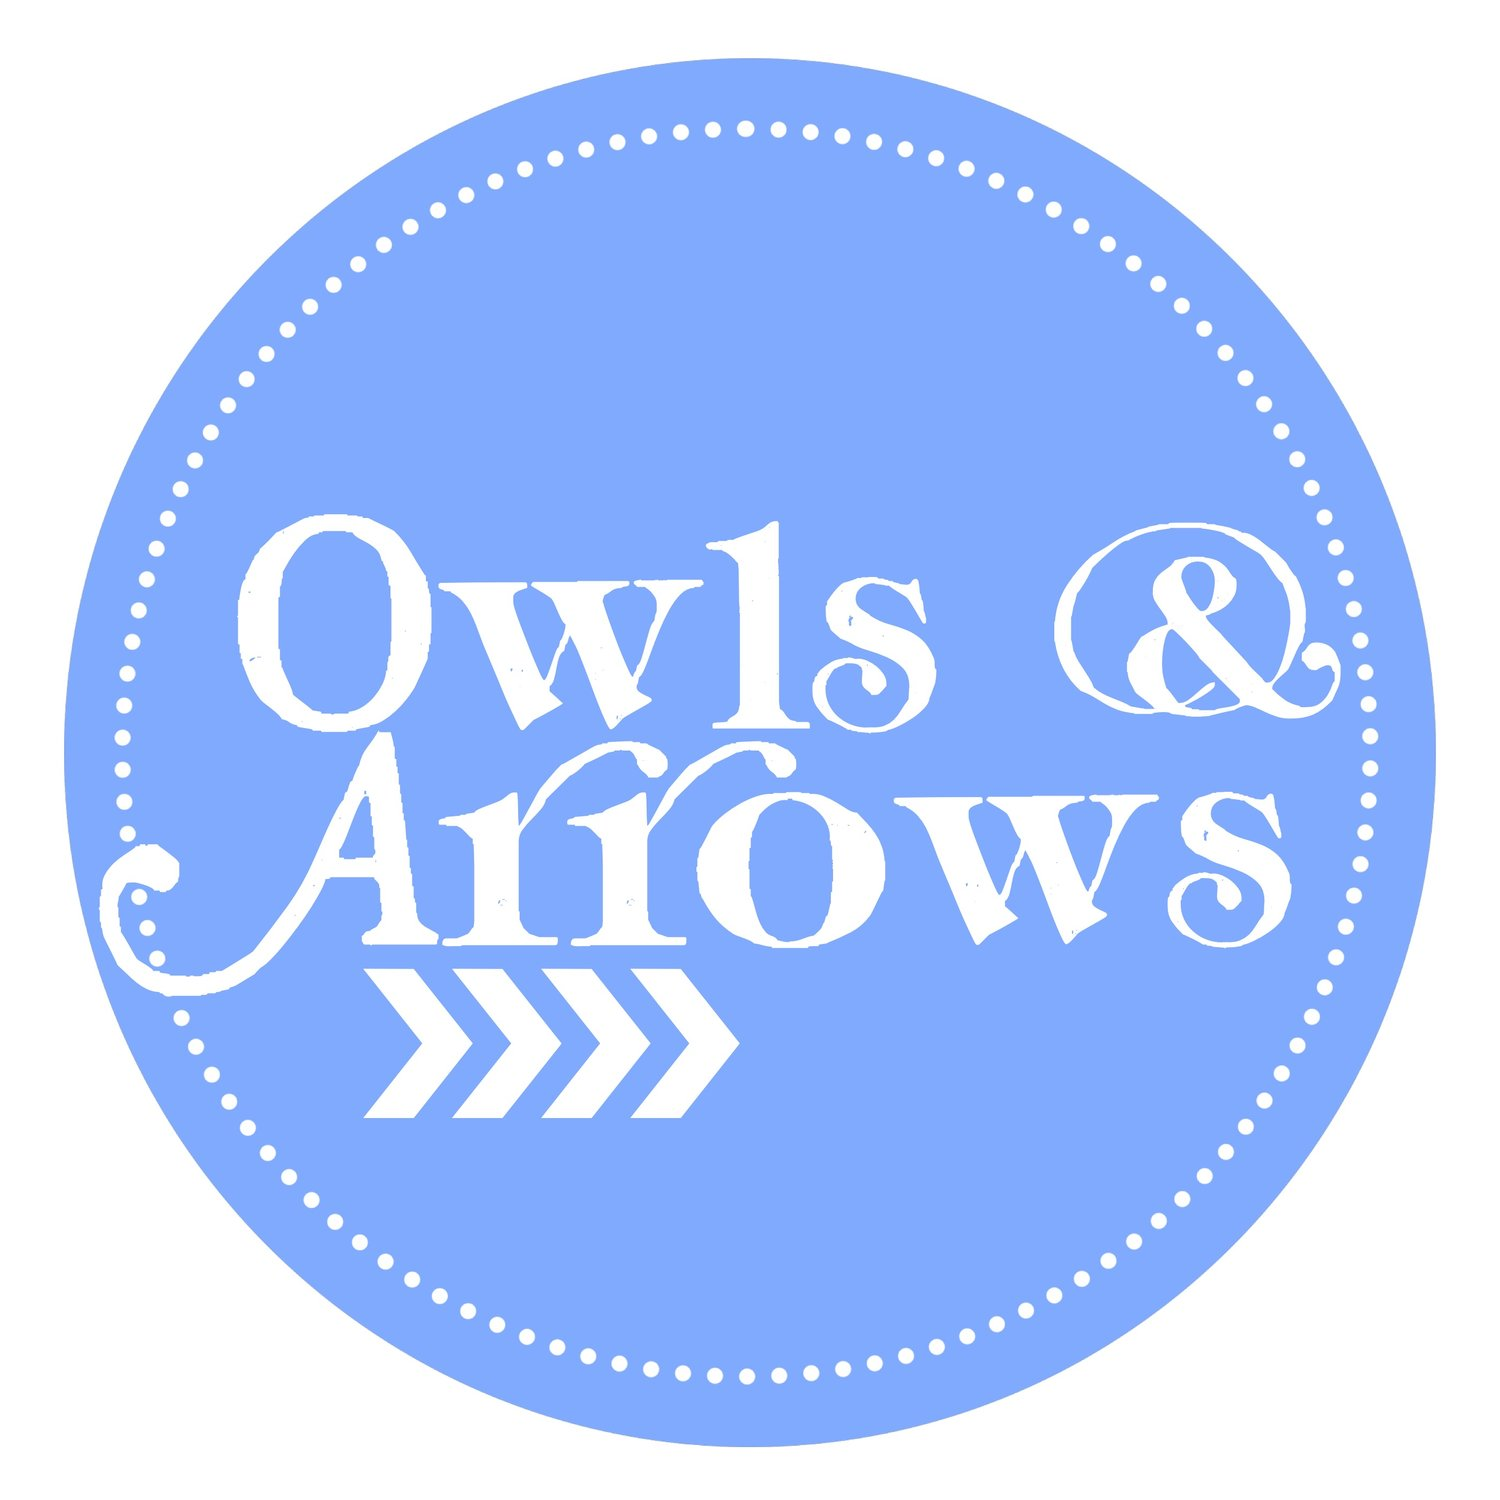 Owls & Arrows by Toni Imsen